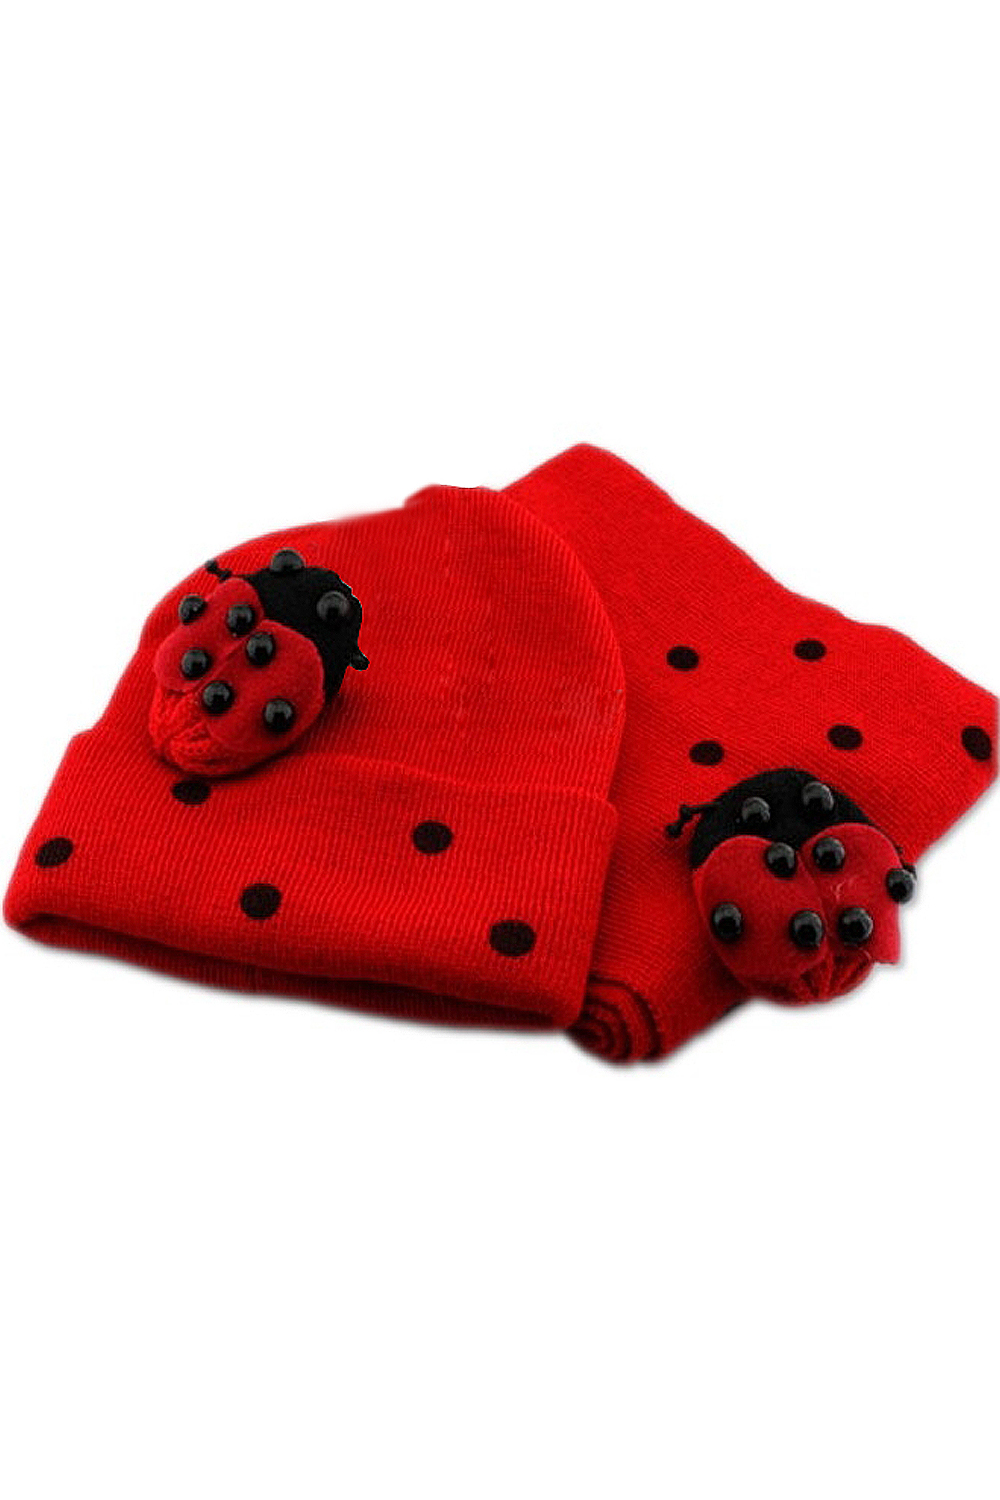 Hot Red Baby Boy Girl Toddler Winter Ladybird Ladybug Hat And Scarf Set